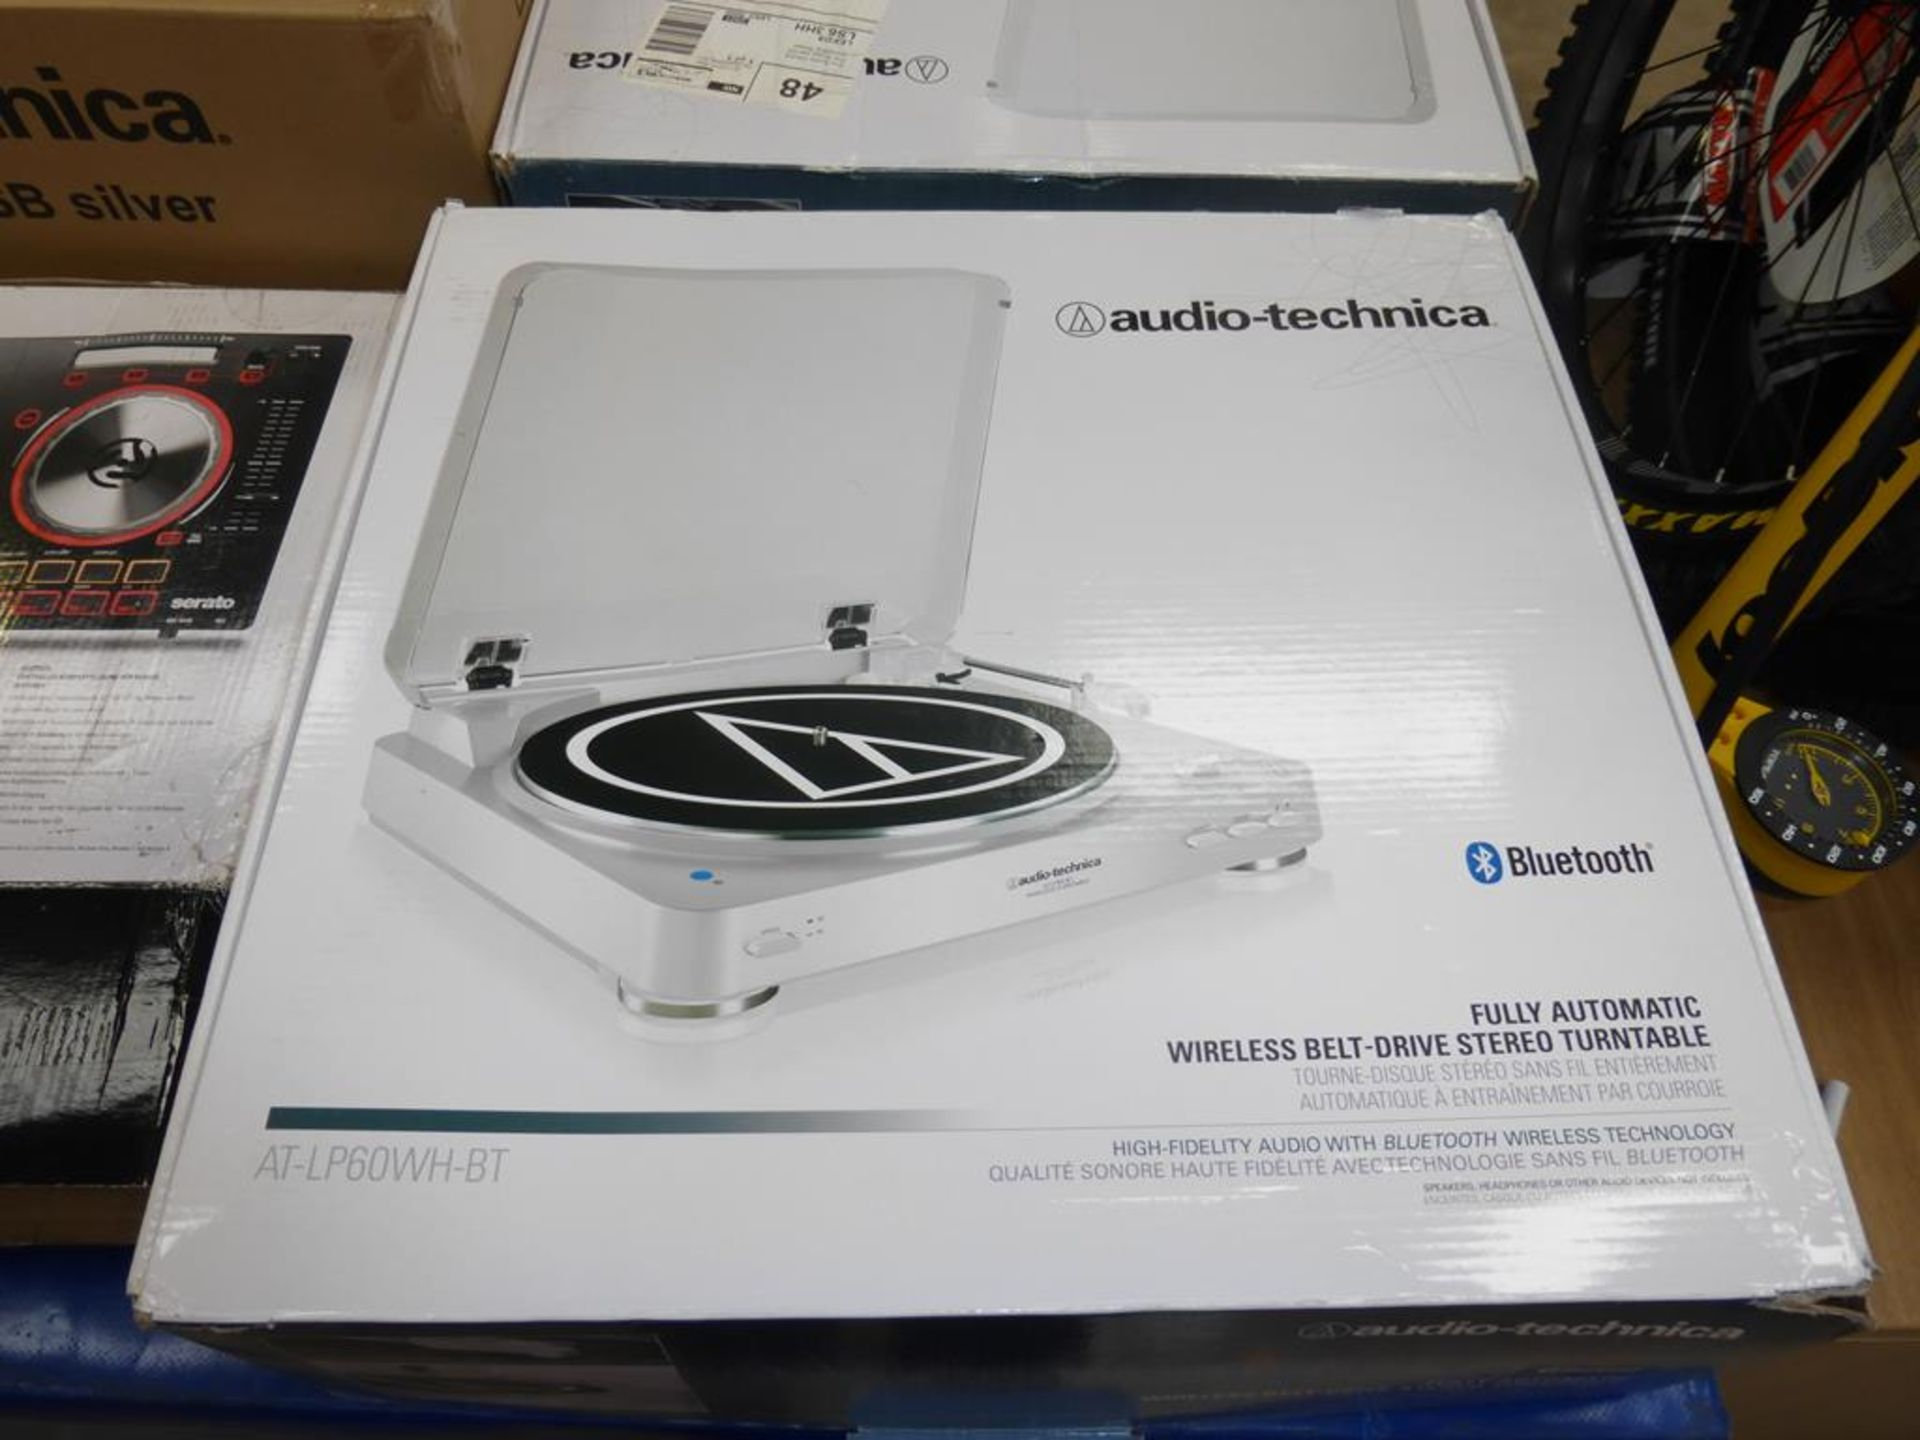 Lot 57 - * An Audio-Technica AT-LP6OWH-BT Turntable (RRP £148.95)